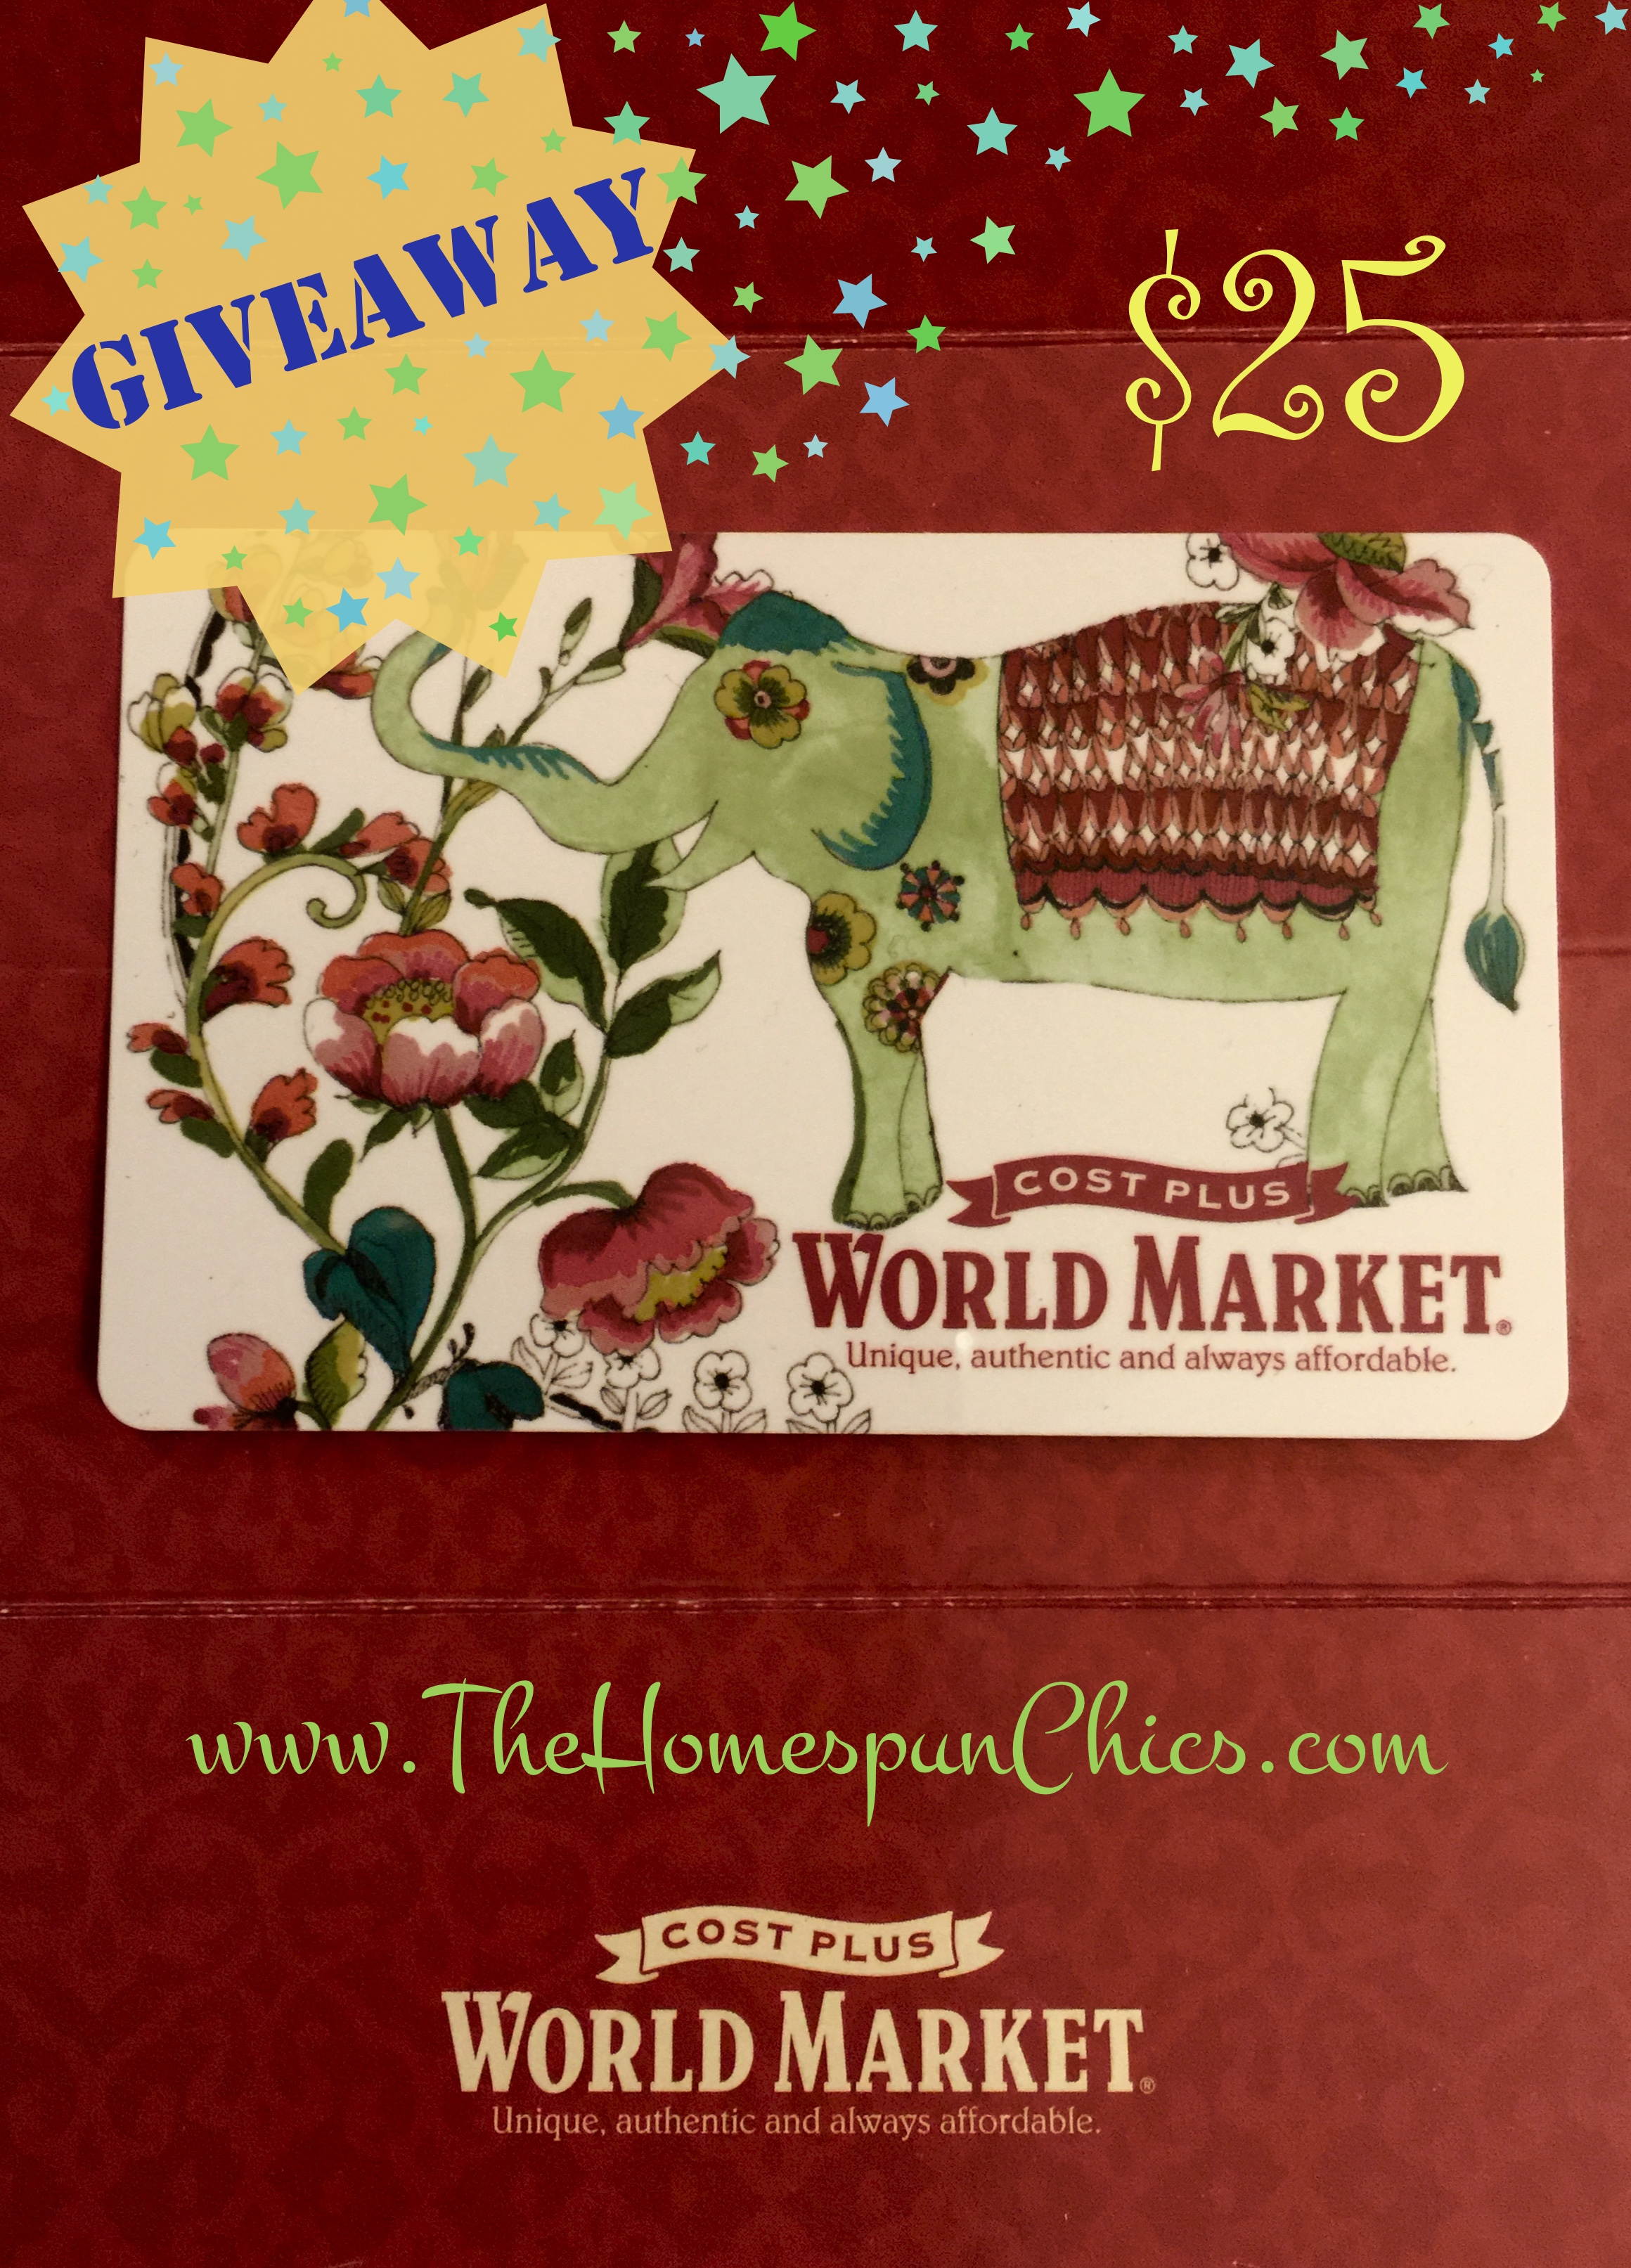 Giveaway 2500 world market gift card the homespun chics 2500 world market gift card the homespun chics m4hsunfo